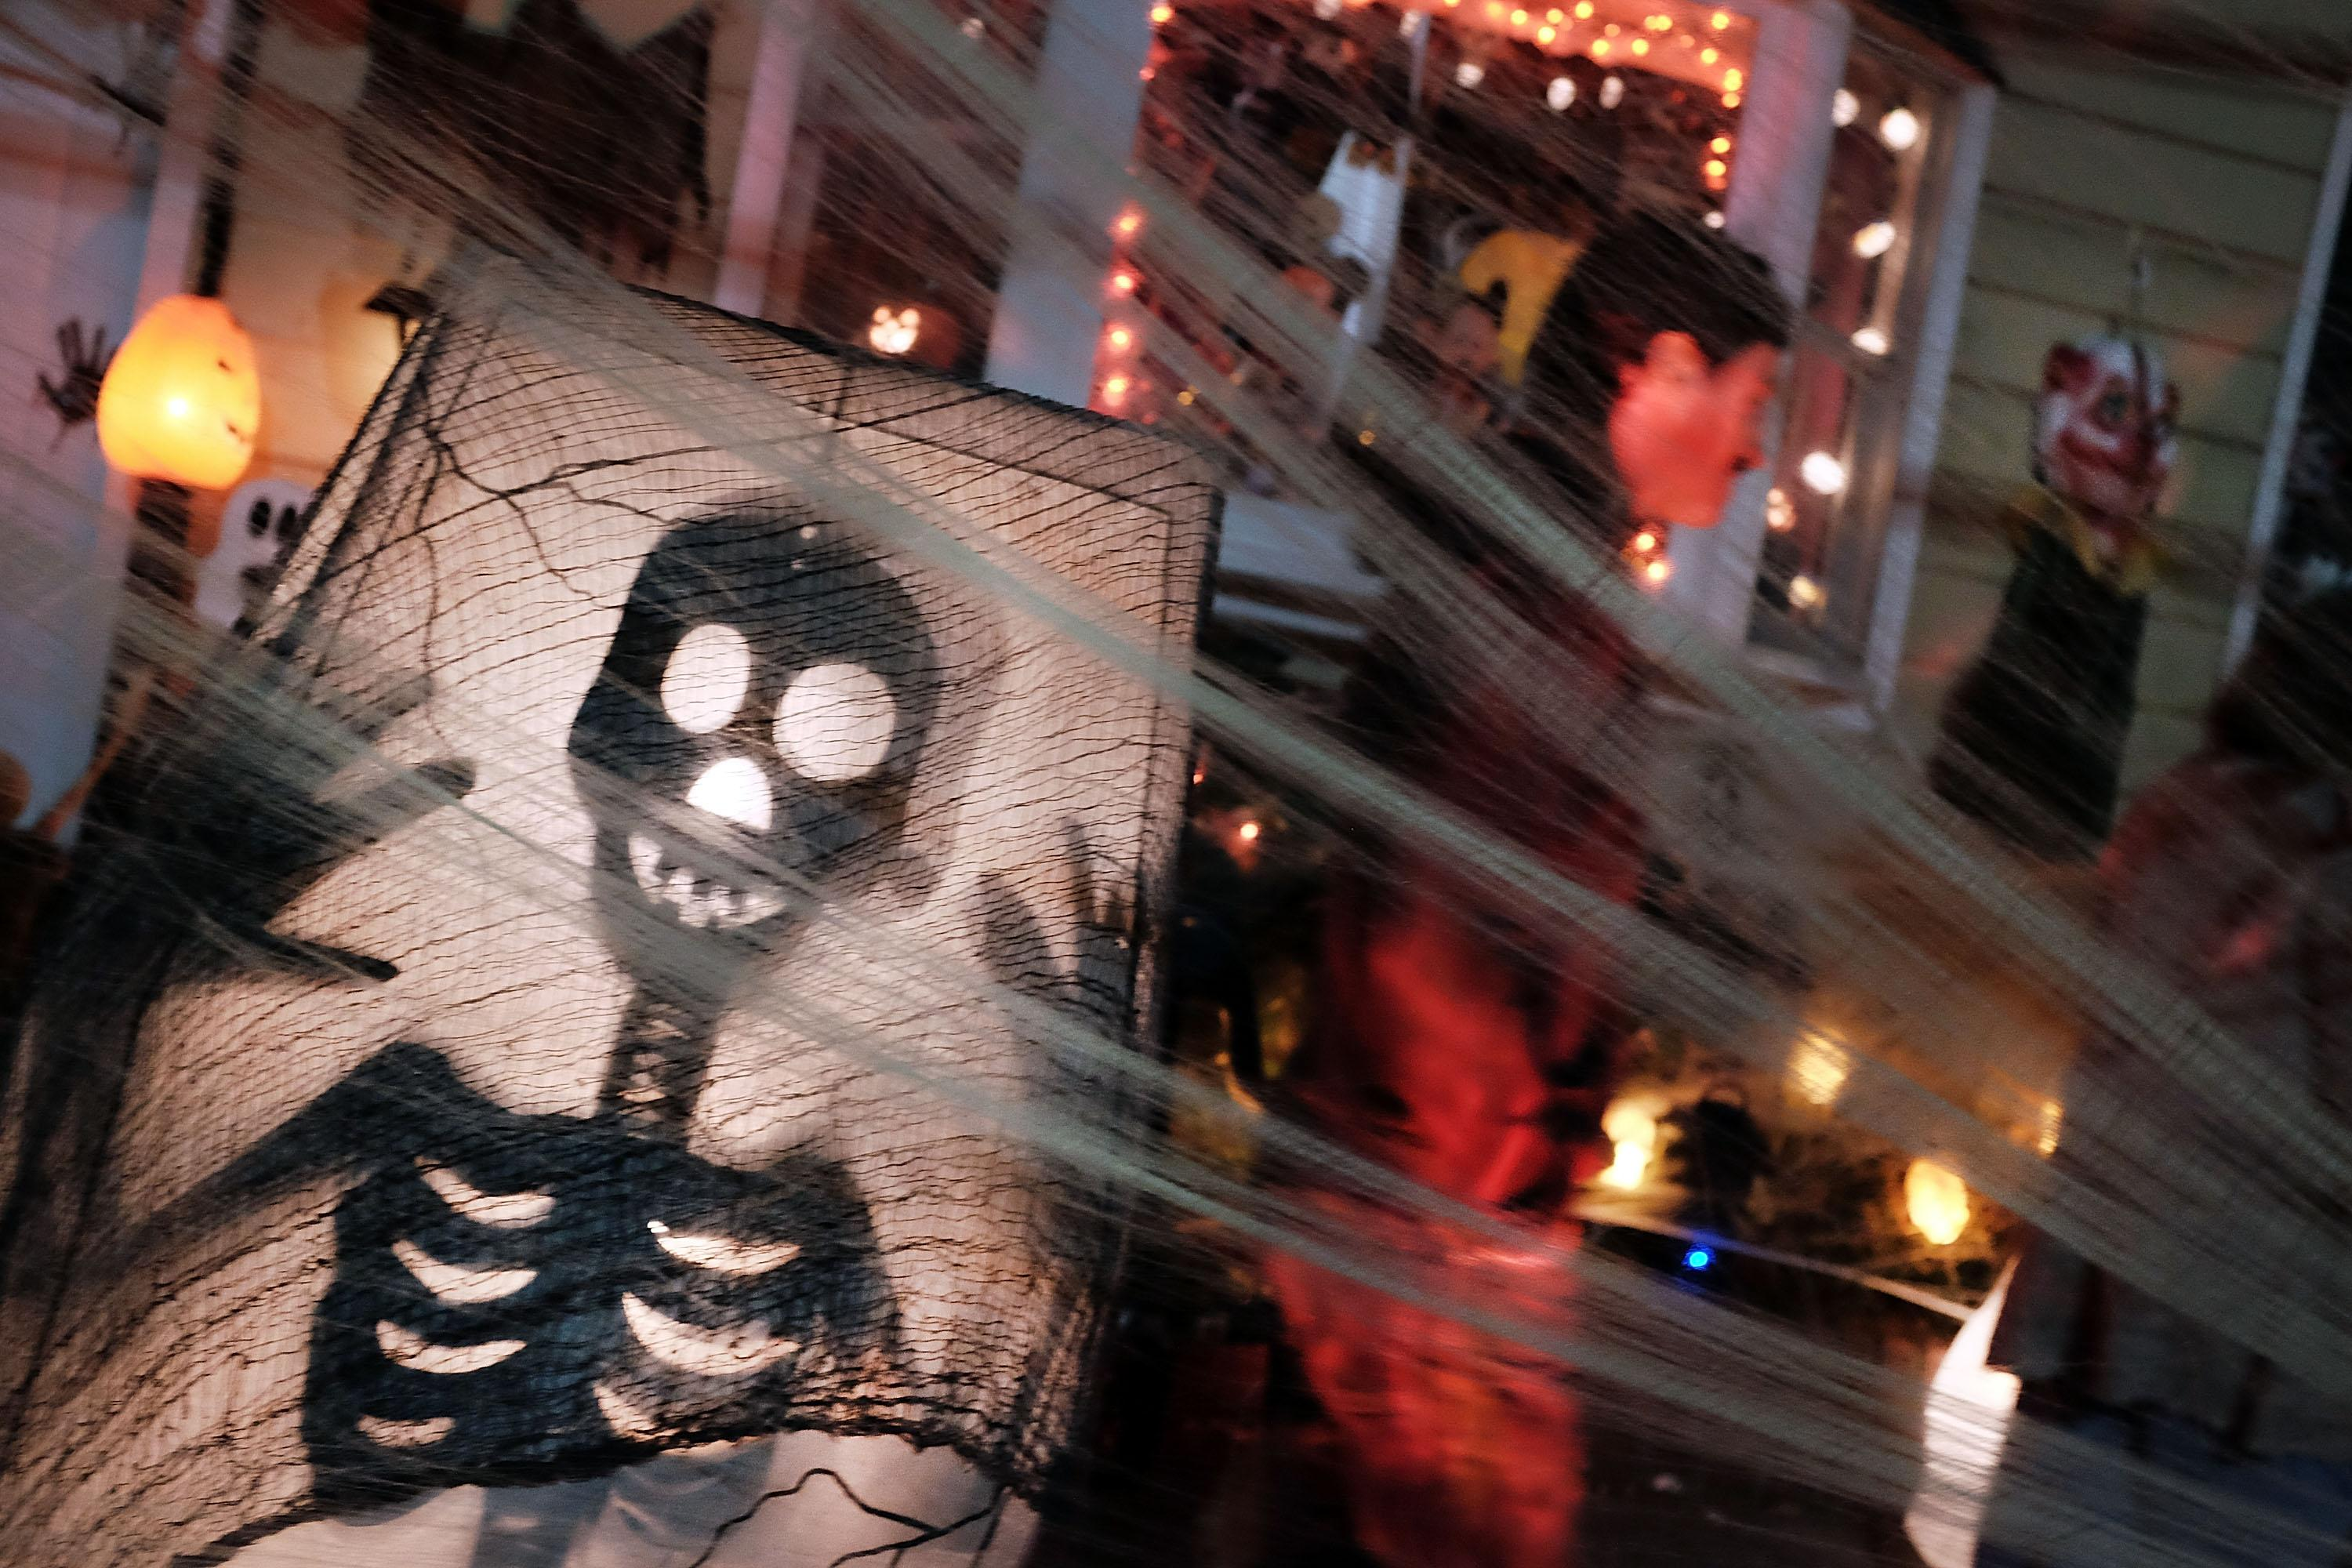 How Old Is Too Old to Trick-Or-Treat on Halloween?